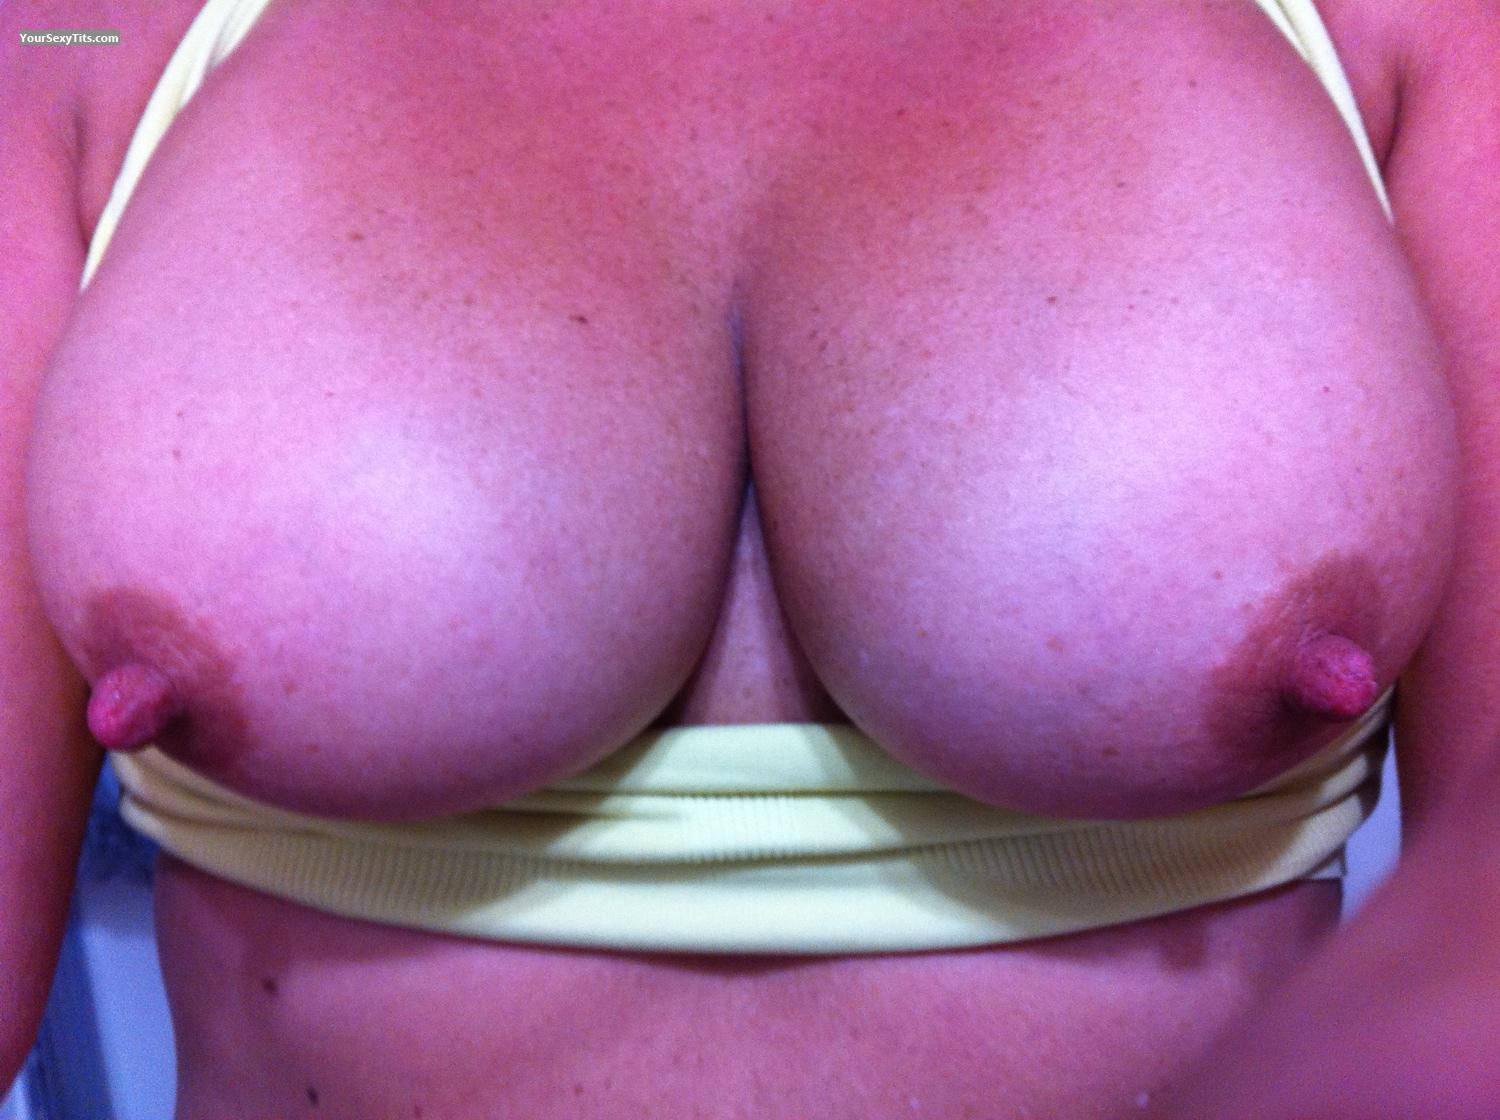 Tit Flash: My Medium Tits By IPhone (Selfie) - Good Gurl Gone Bad from United States